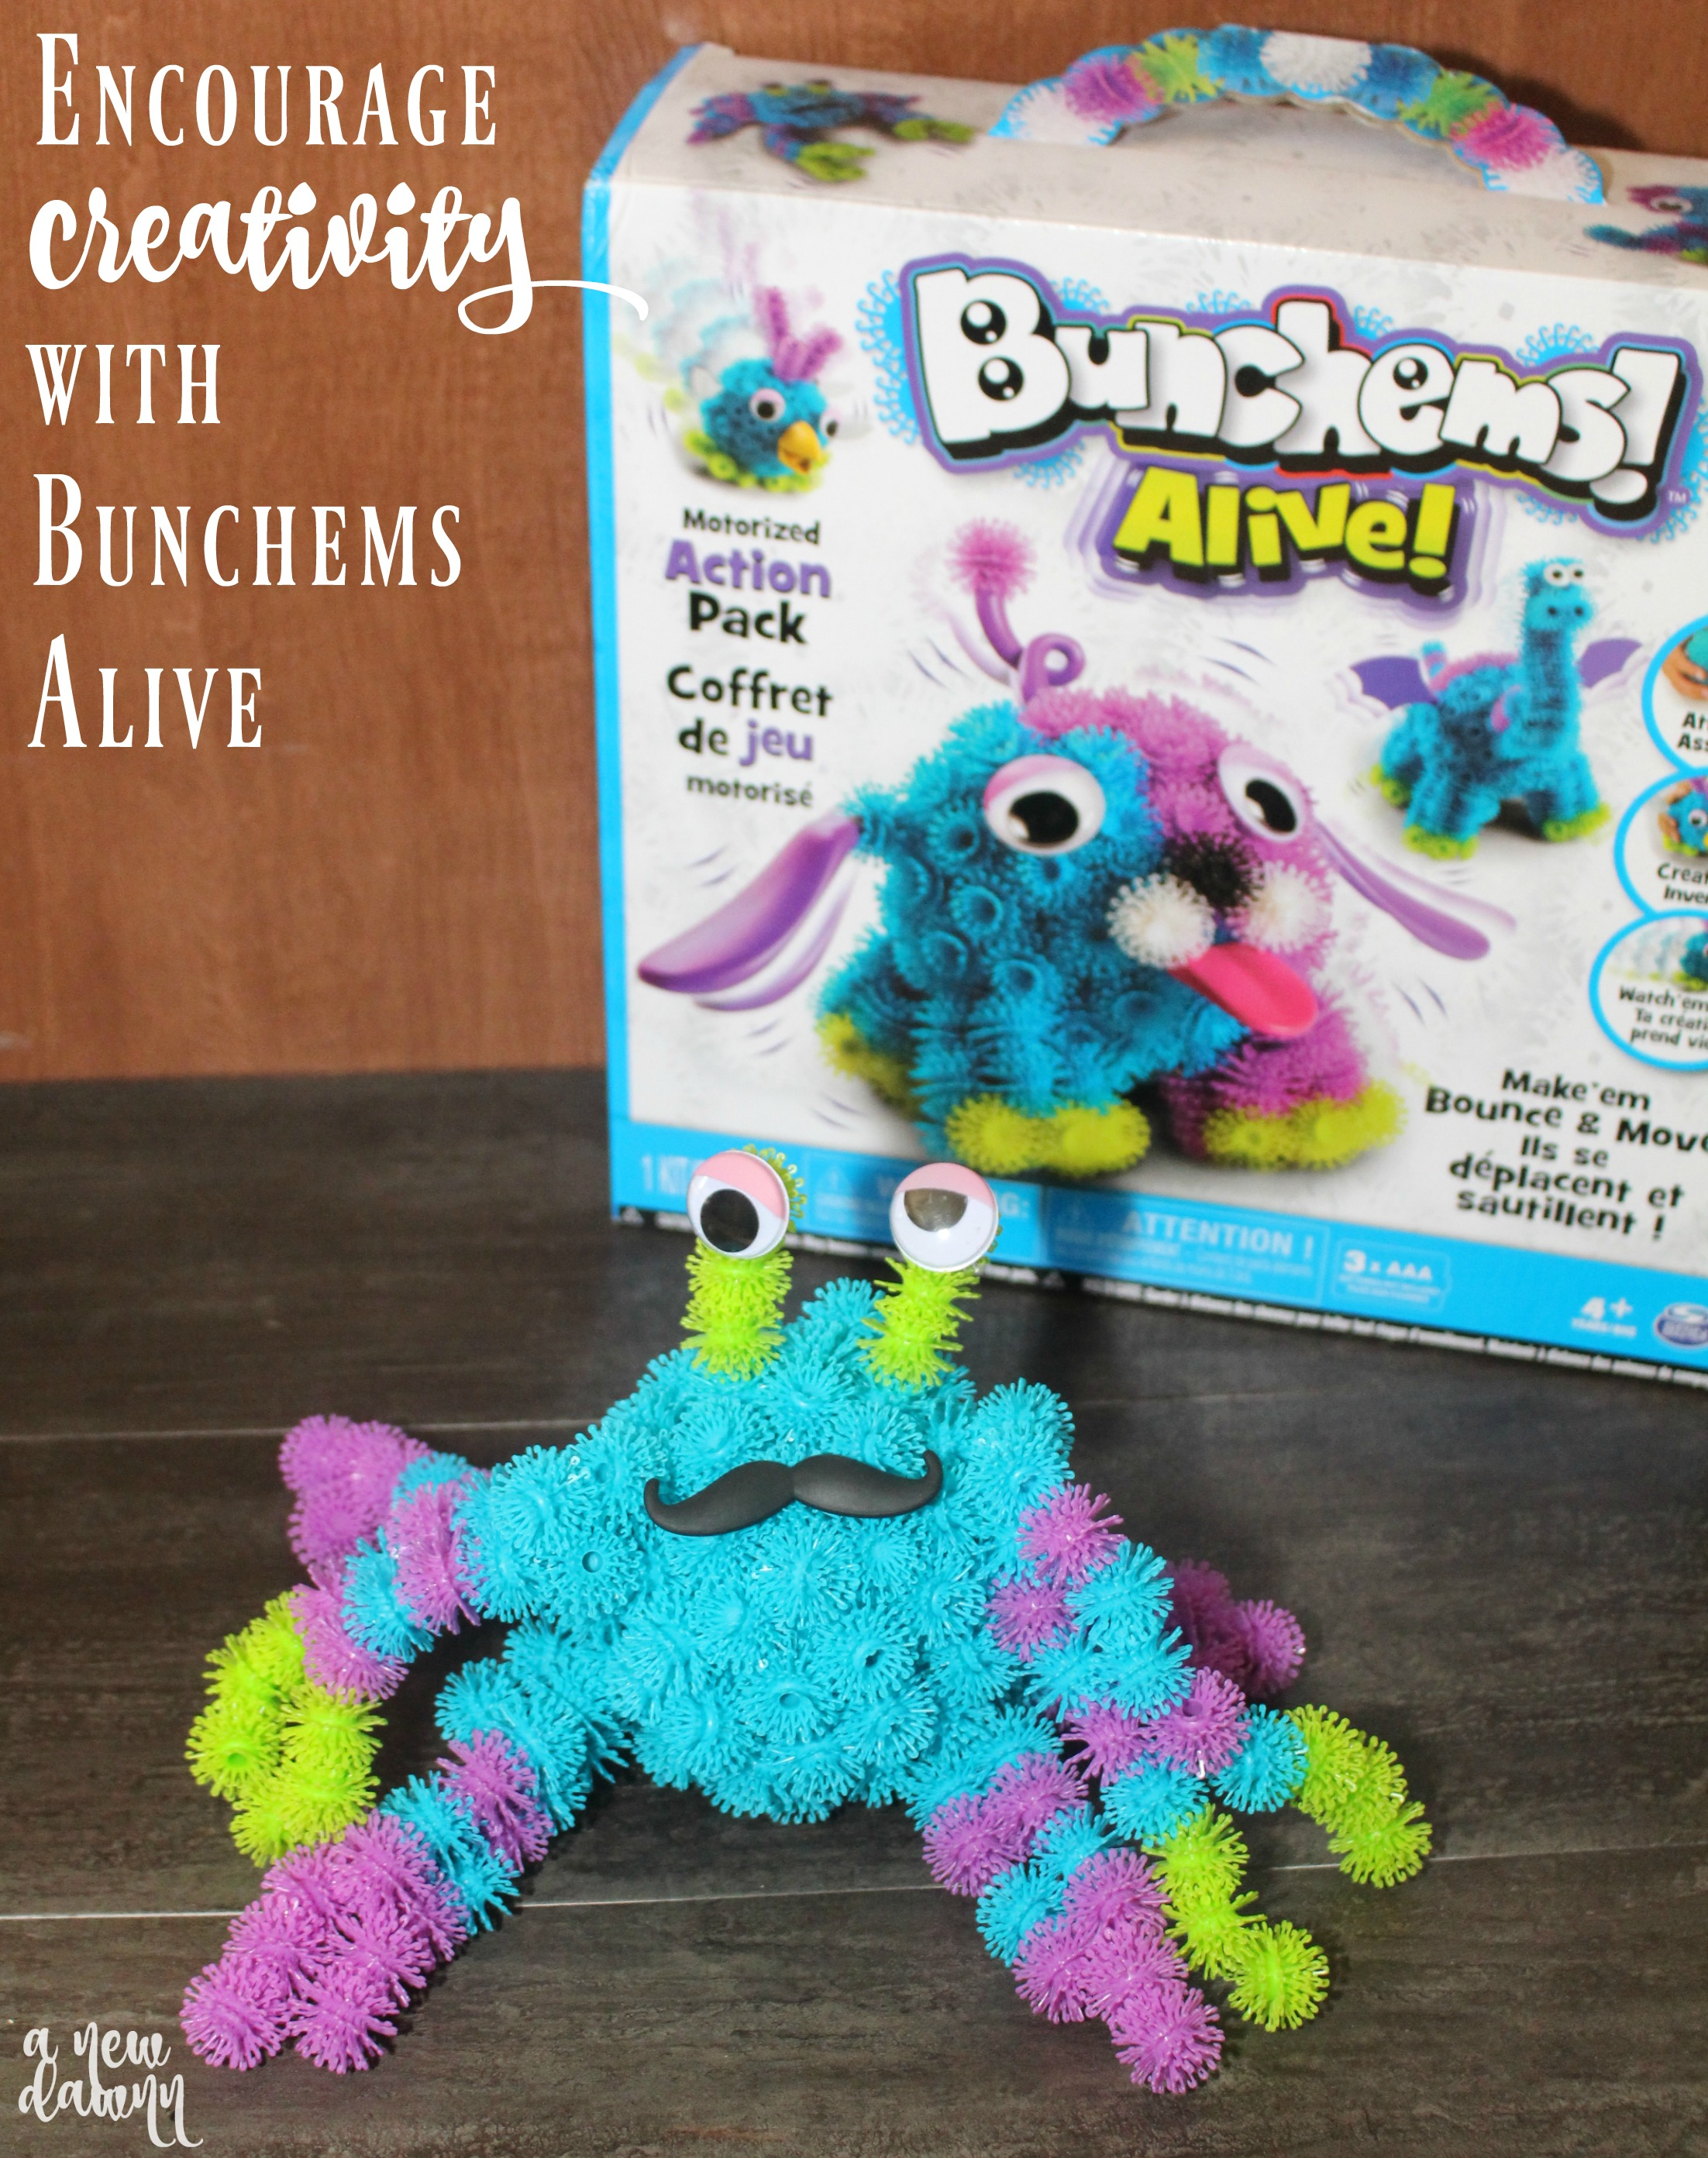 Bunchems Alive